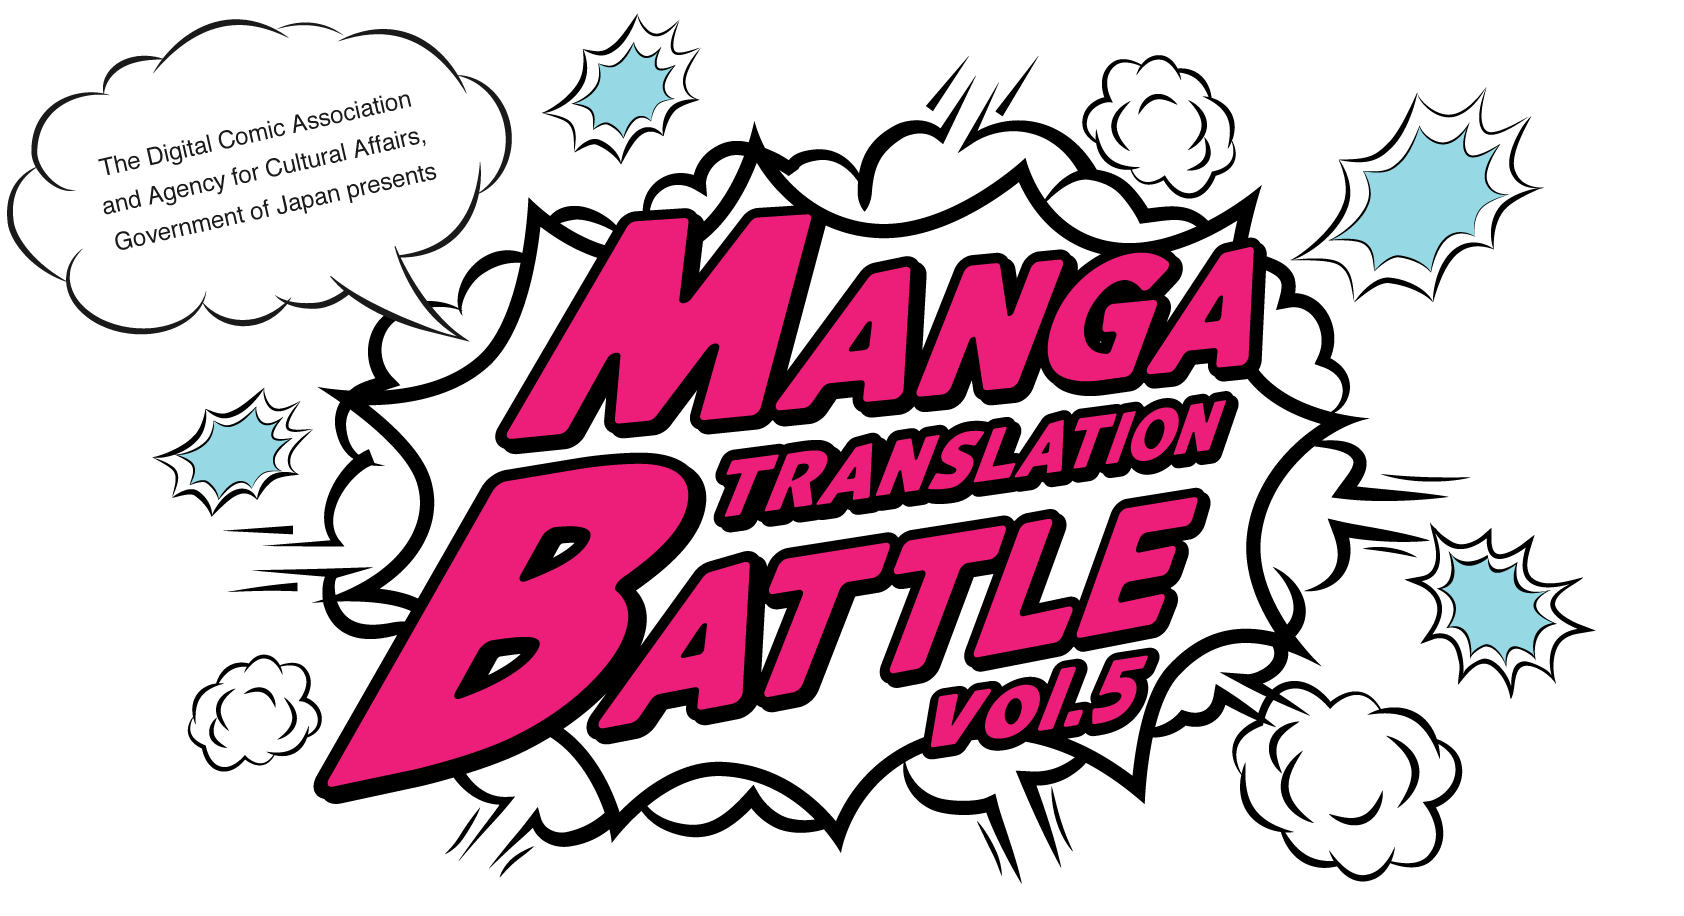 Manga Translation Battle Vol. 5